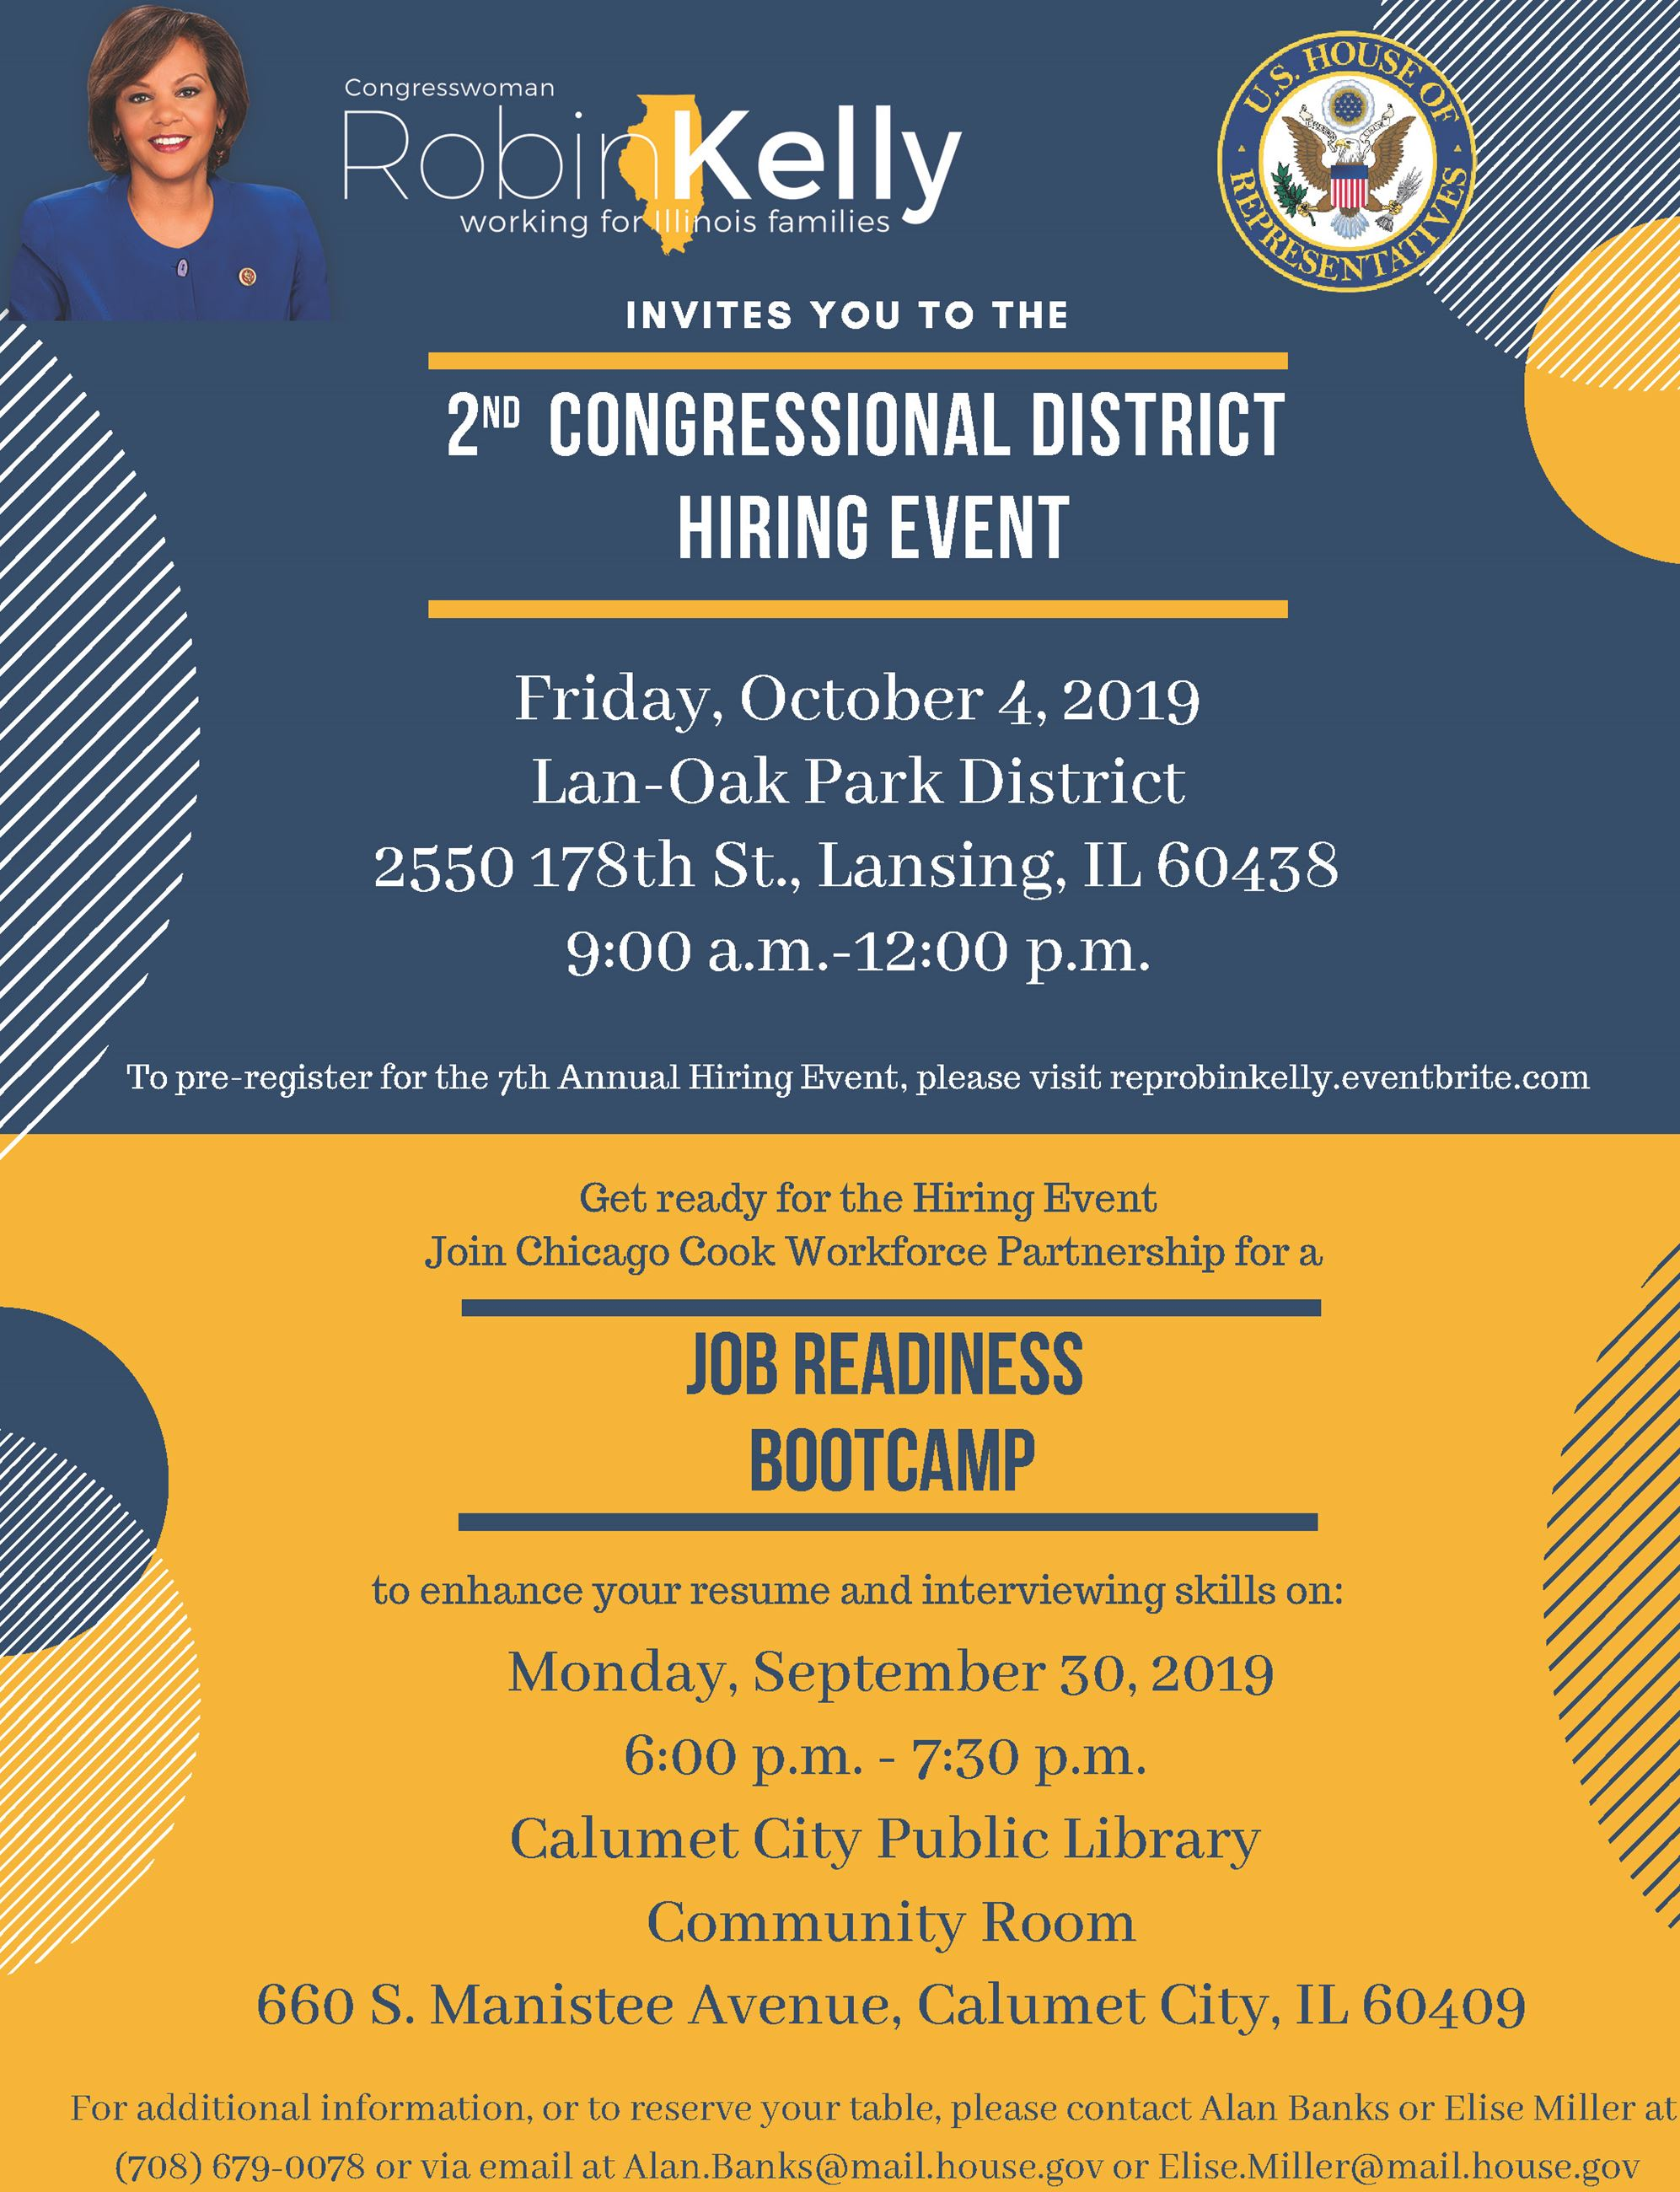 Flyer - Congresswoman Robin Kelly hiring event